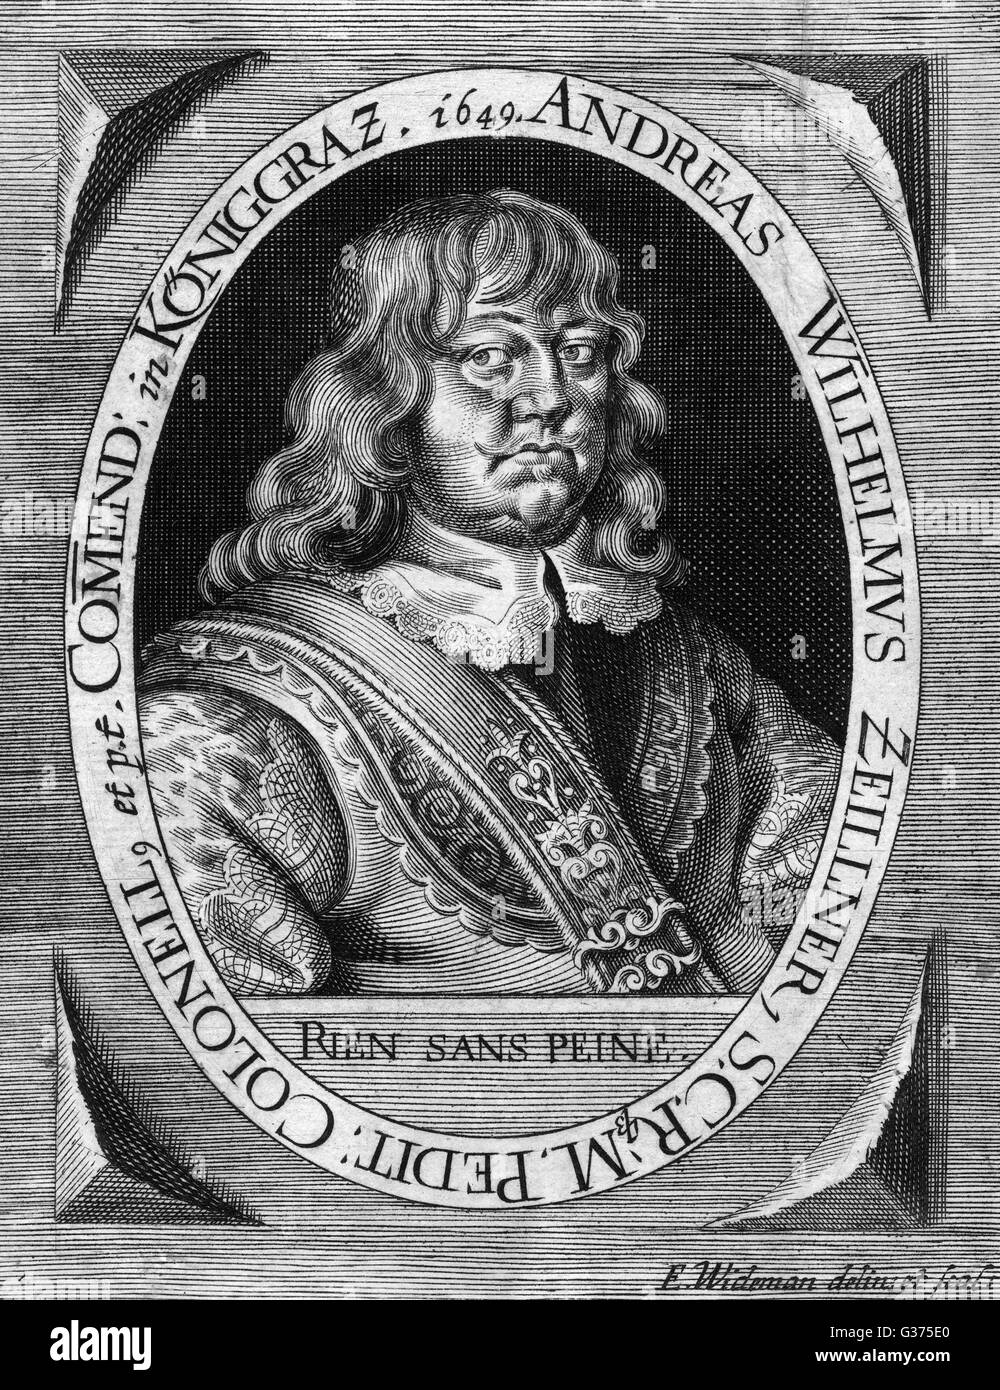 ANDREAS WILHELM ZEILLNER German military commander  whose motto was 'rien sans  peine' (nothing is obtained - Stock Image